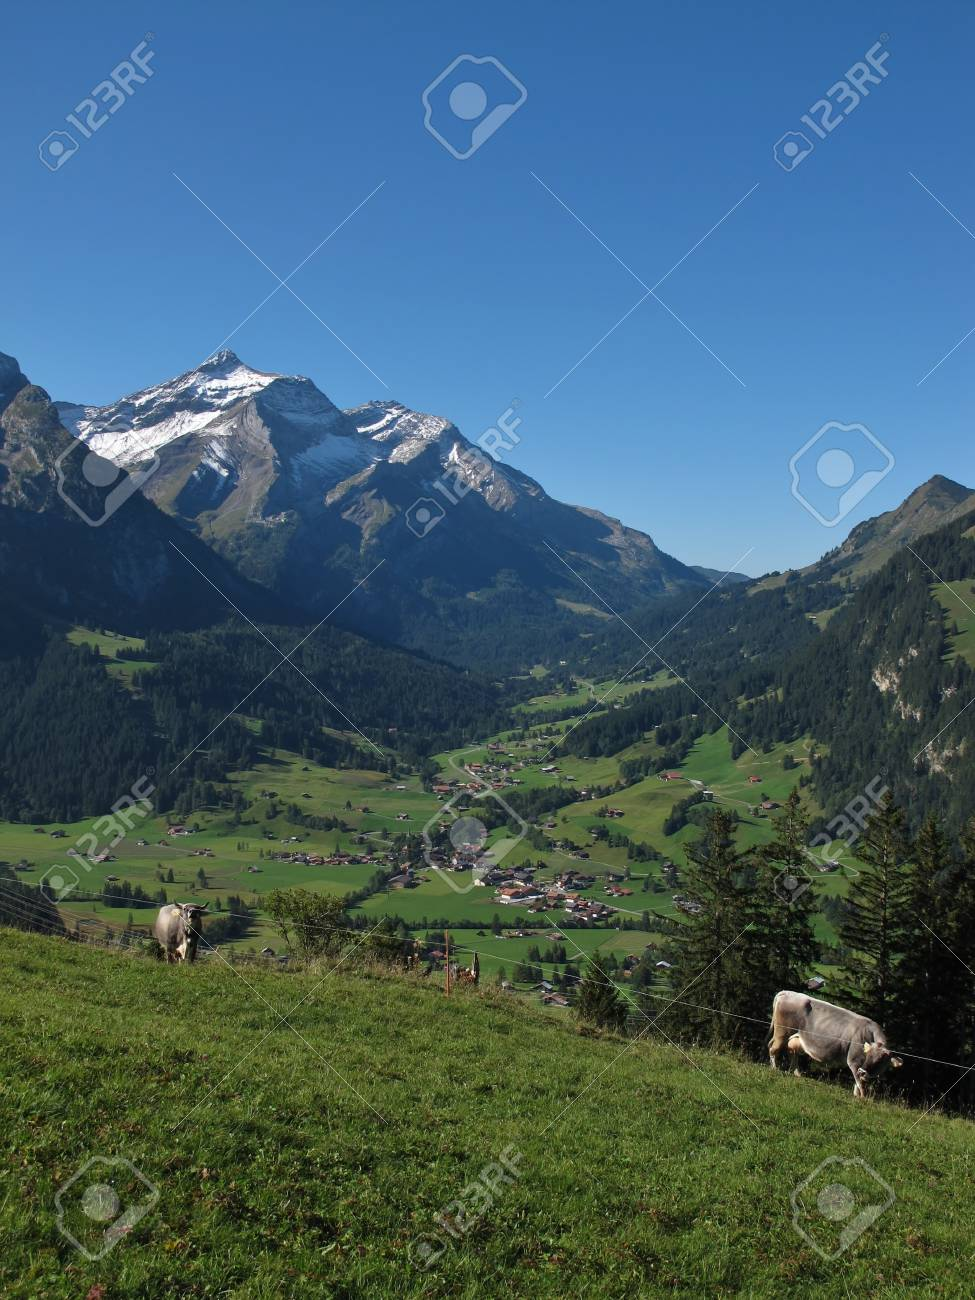 Gsteig Bei Gstaad, Oldenhorn And Cows Stock Photo - 15456096